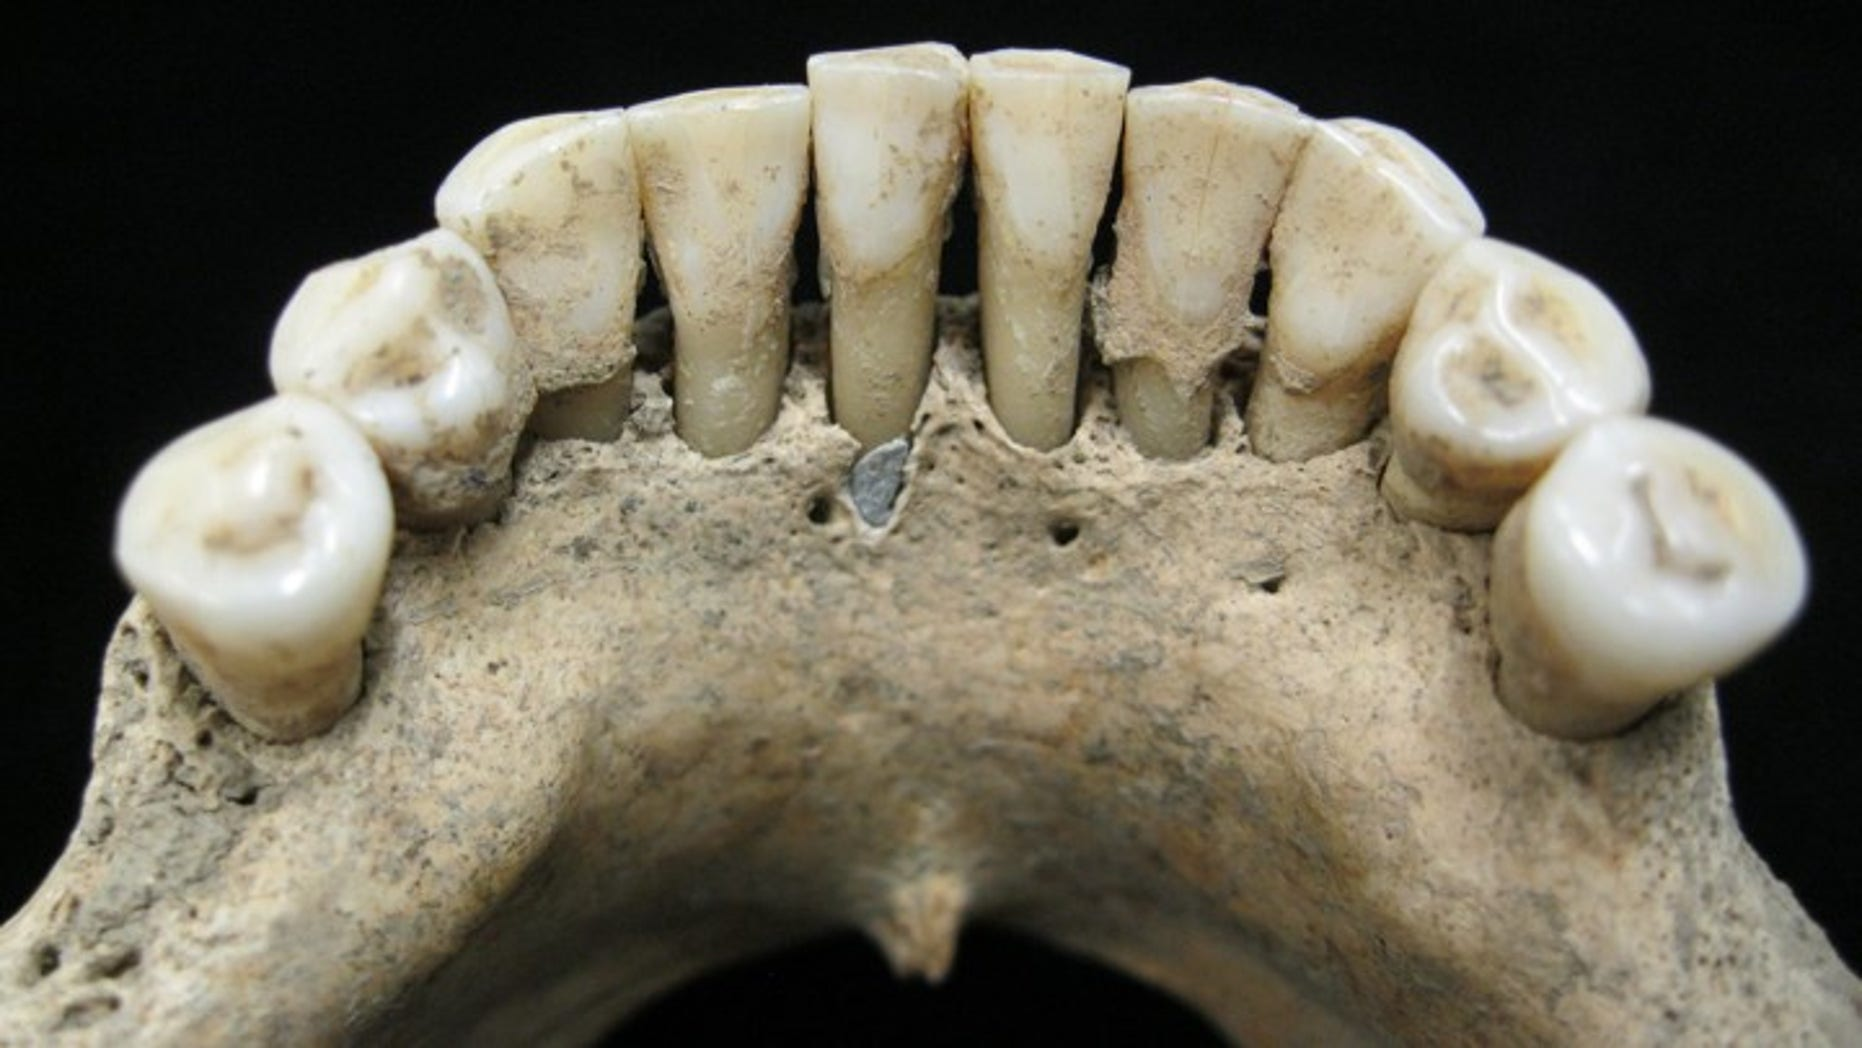 Flecks of blue found in a 1,000-year-old woman's teeth have given scientists a surprising look into the medieval woman's past life.